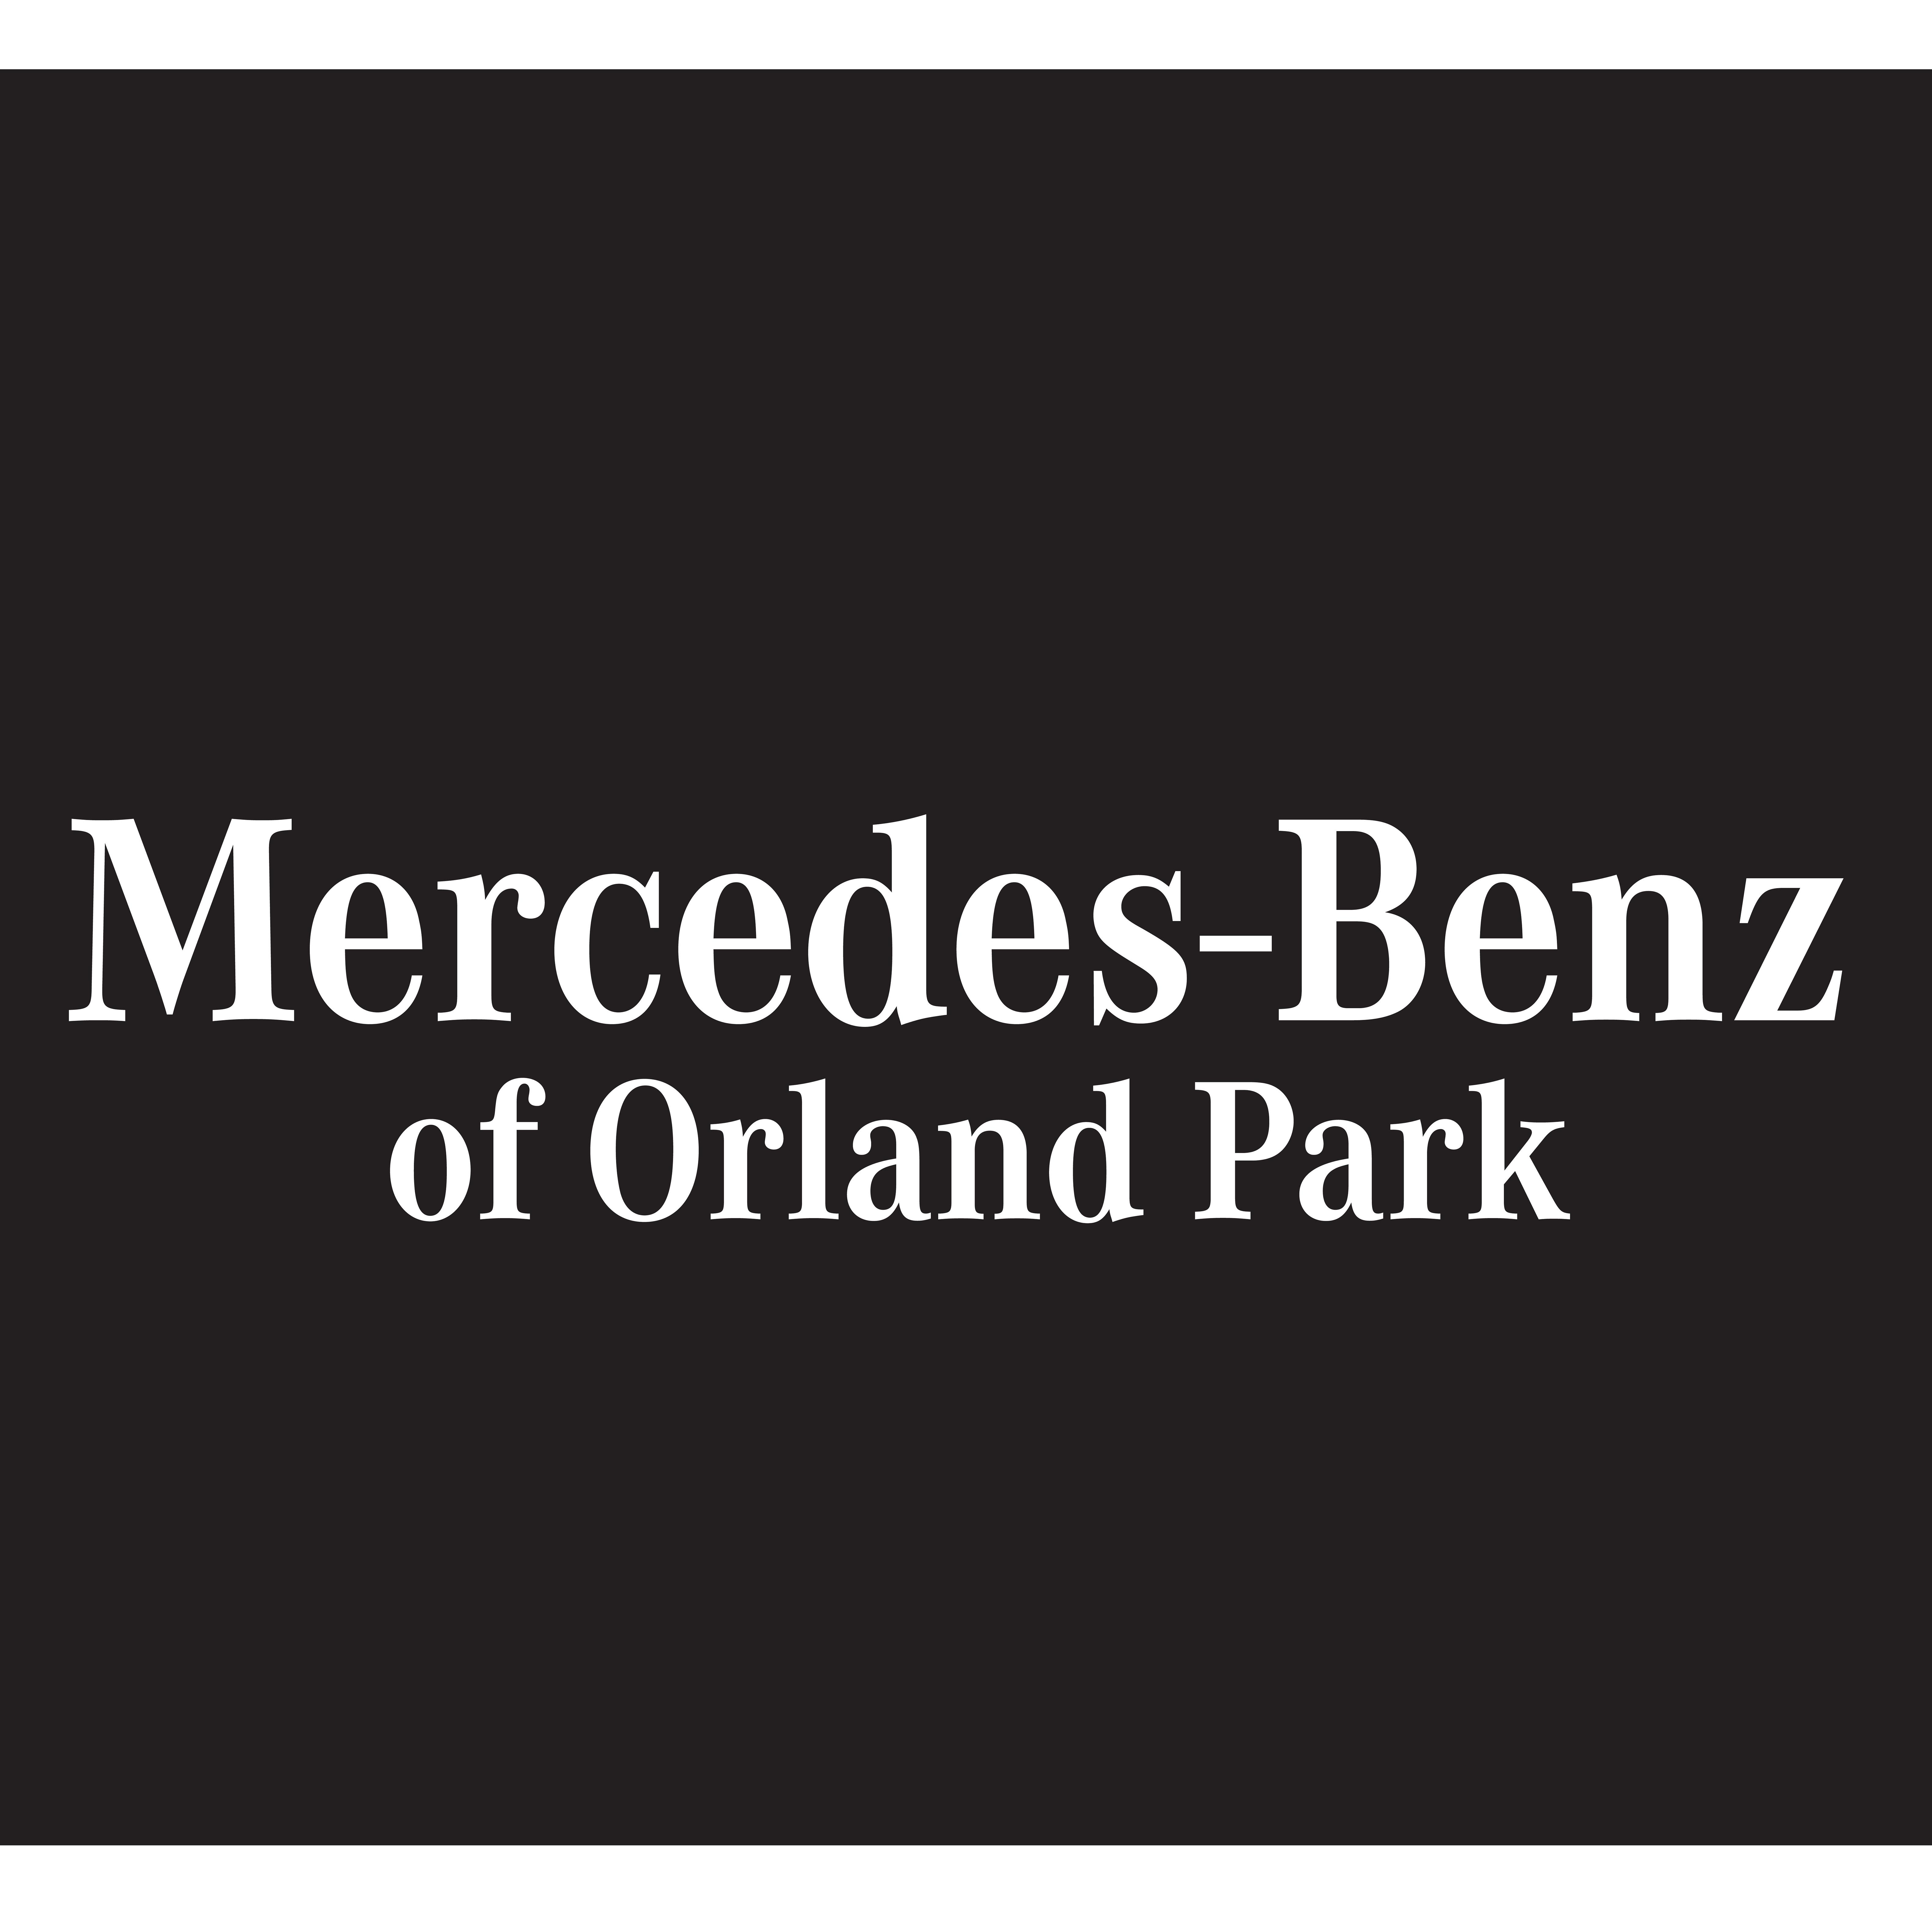 Mercedes-Benz of Orland Park - Orland Park, IL - Auto Dealers